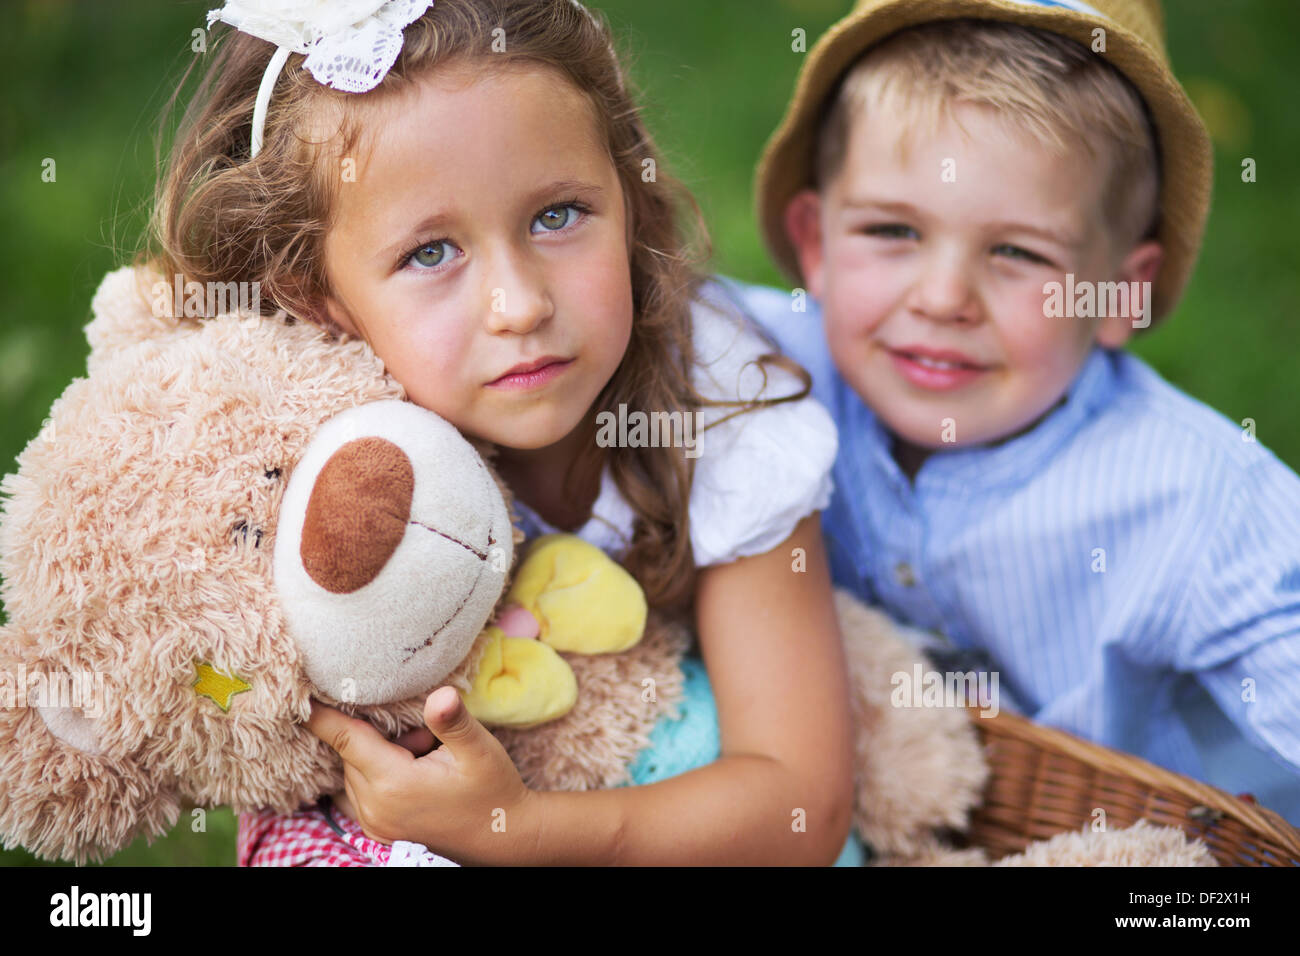 Glad kids holding cute teddy bear toy - Stock Image